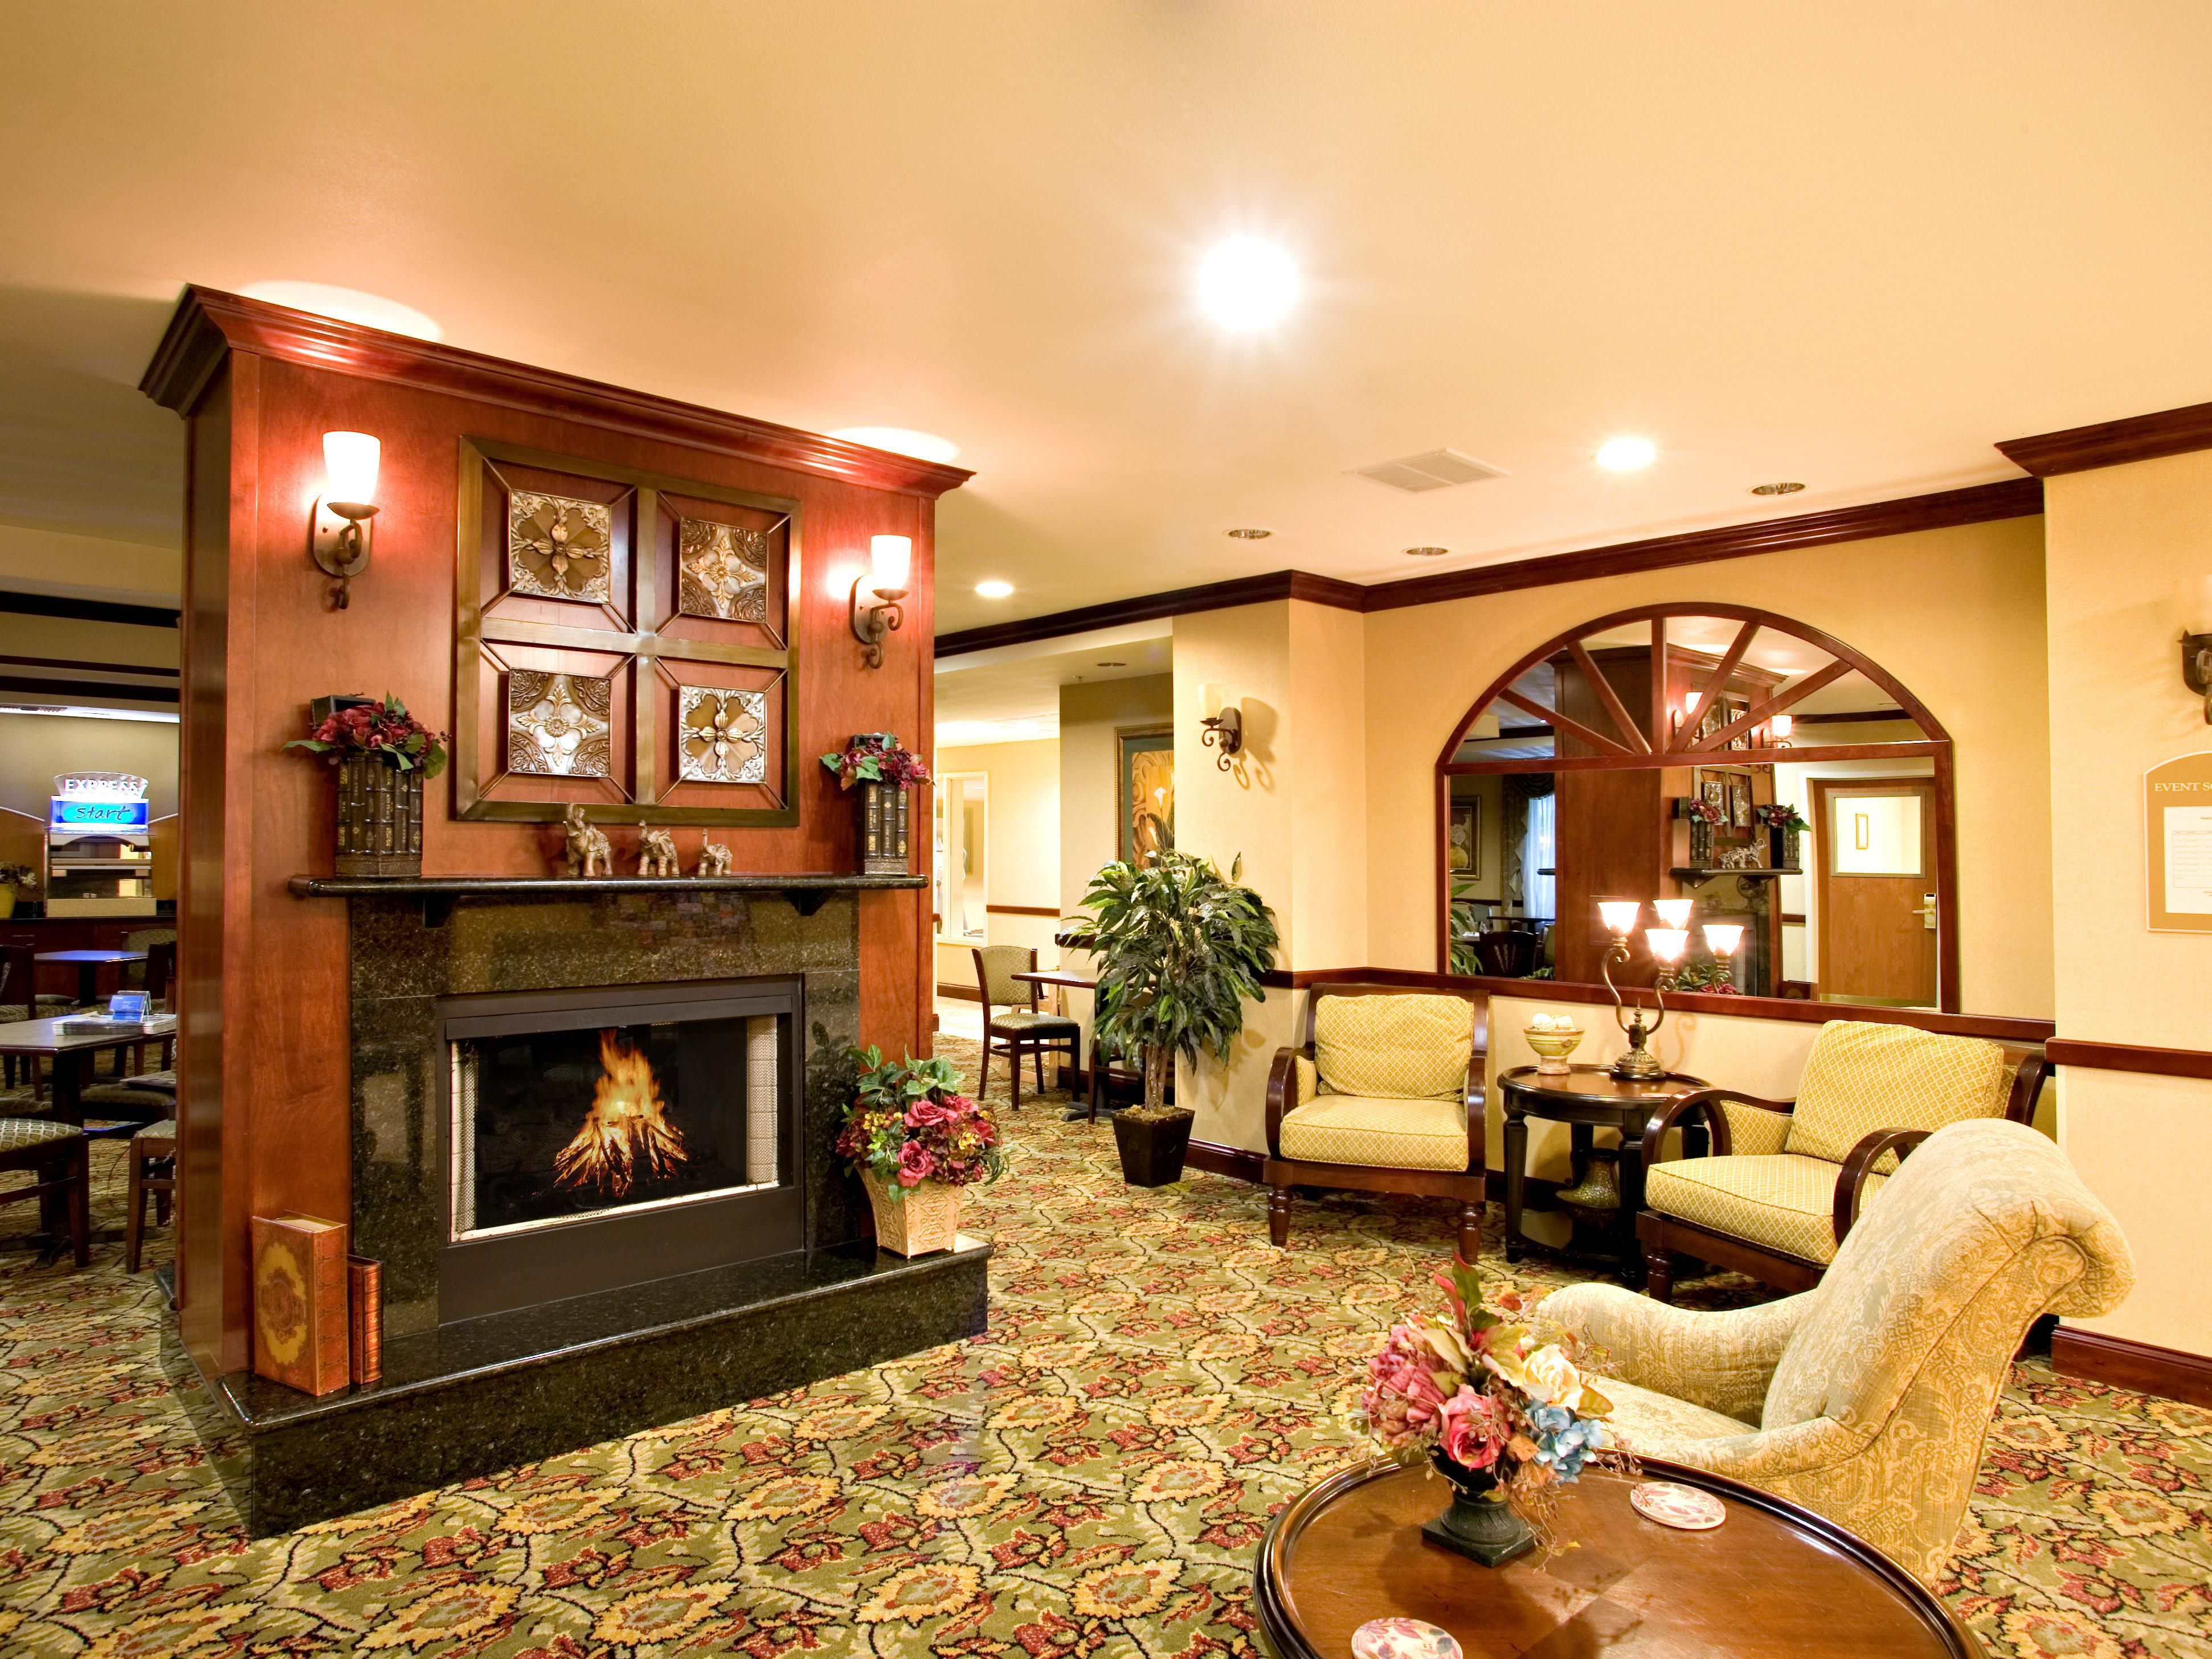 Lobby fireplace and seating